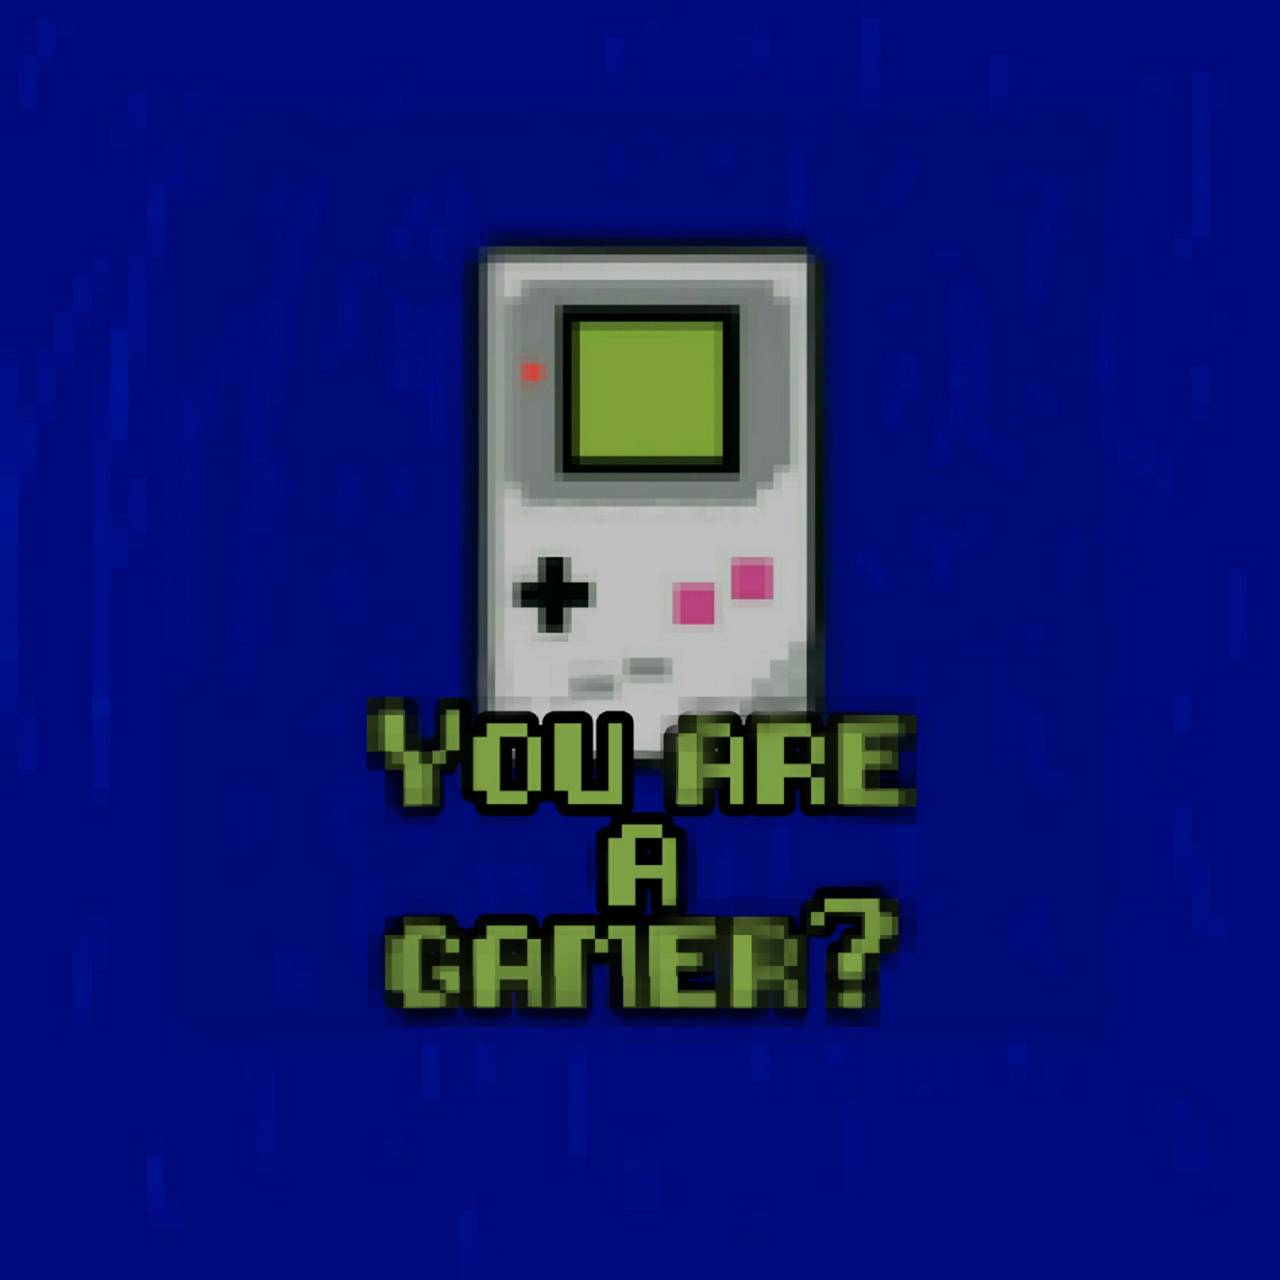 You are a gamer